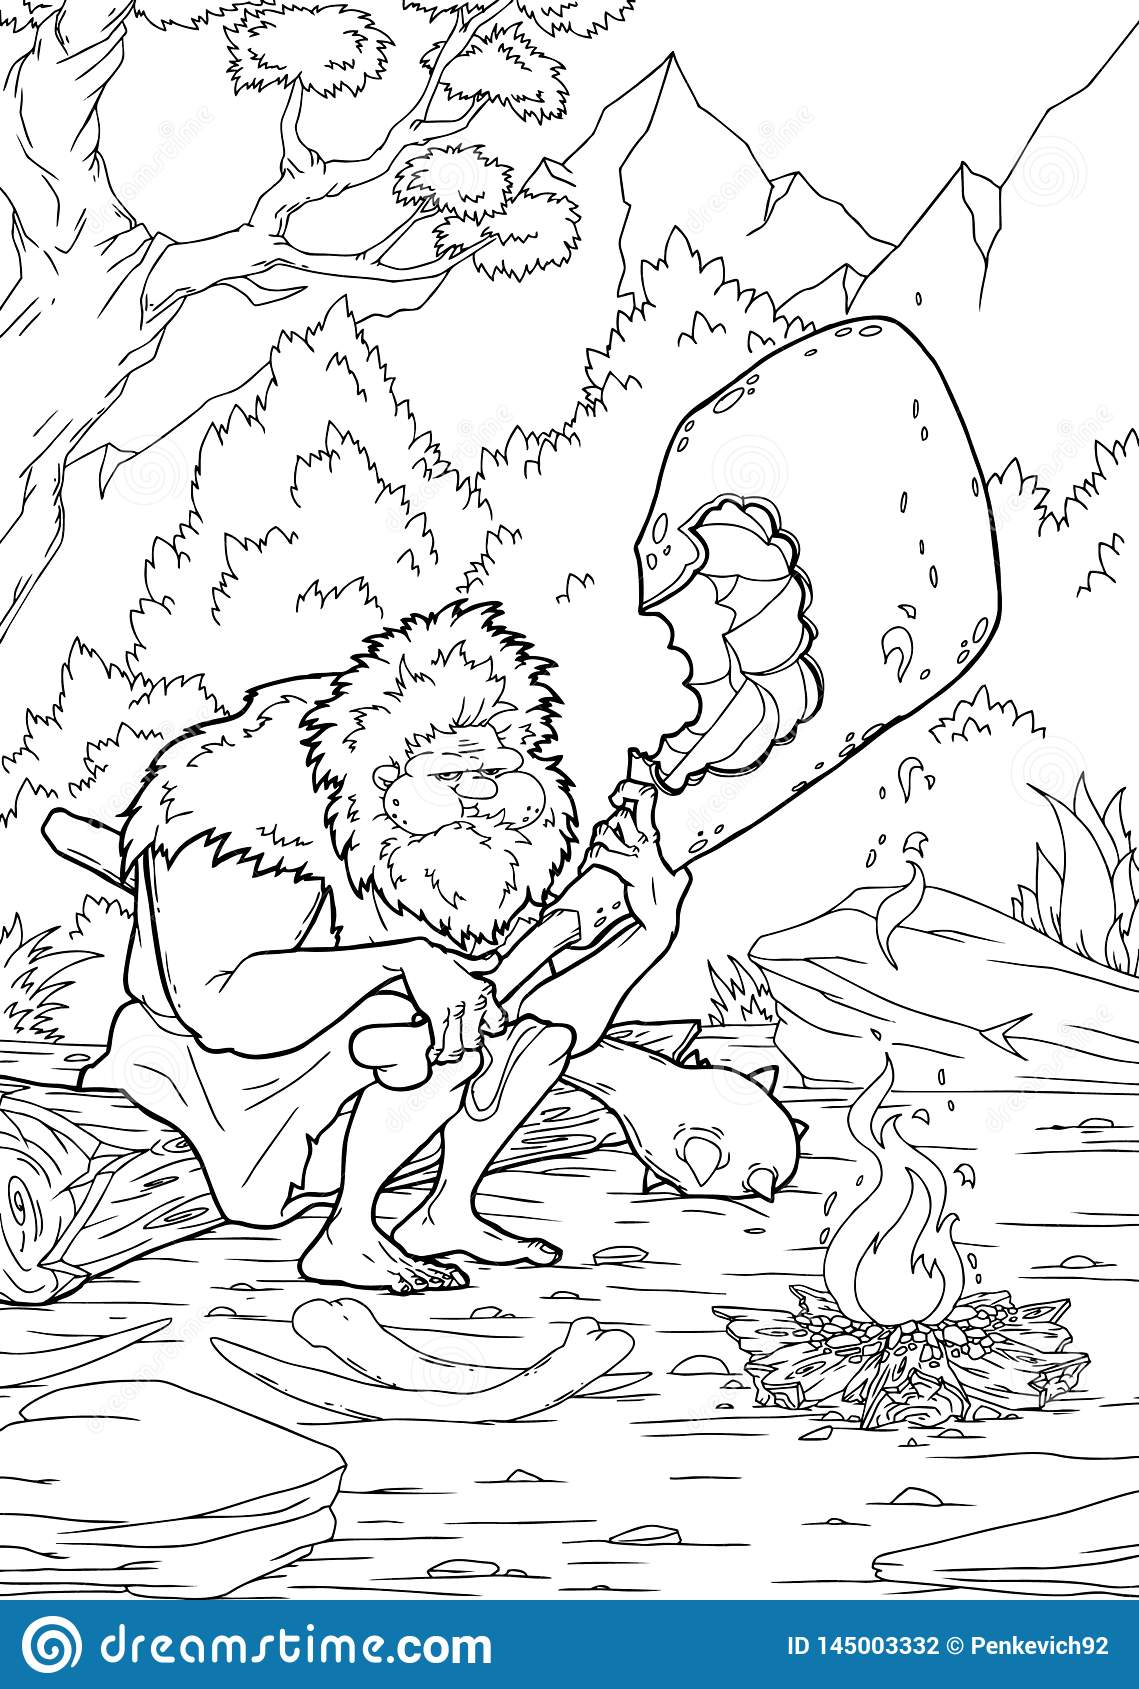 Cute Cartoon Fairytale Unicorn - Coloring Page For Kids Stock ... | 1689x1139